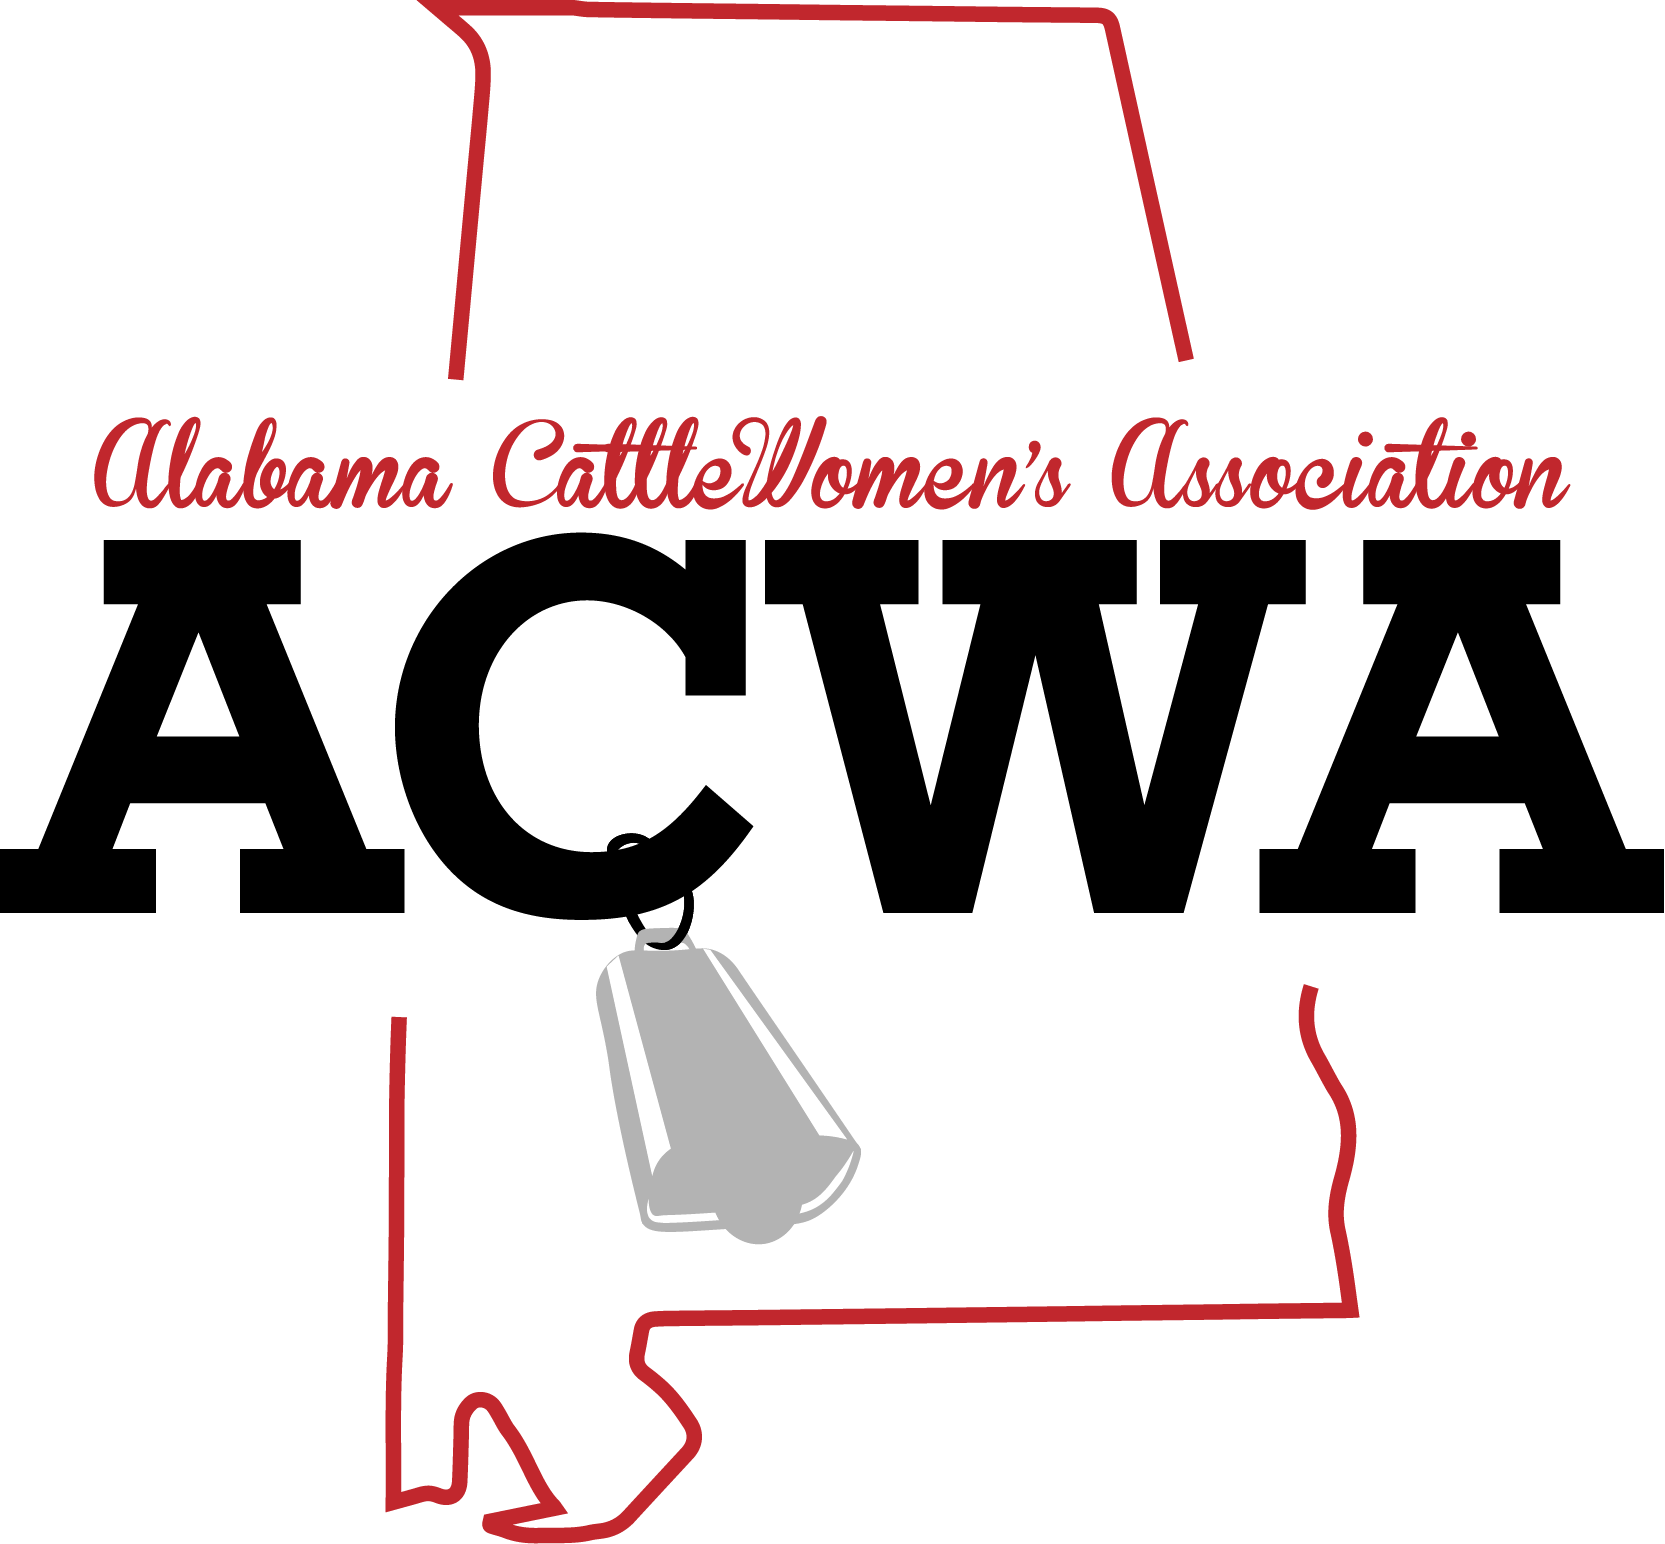 The Alabama Cattlewomen's Association